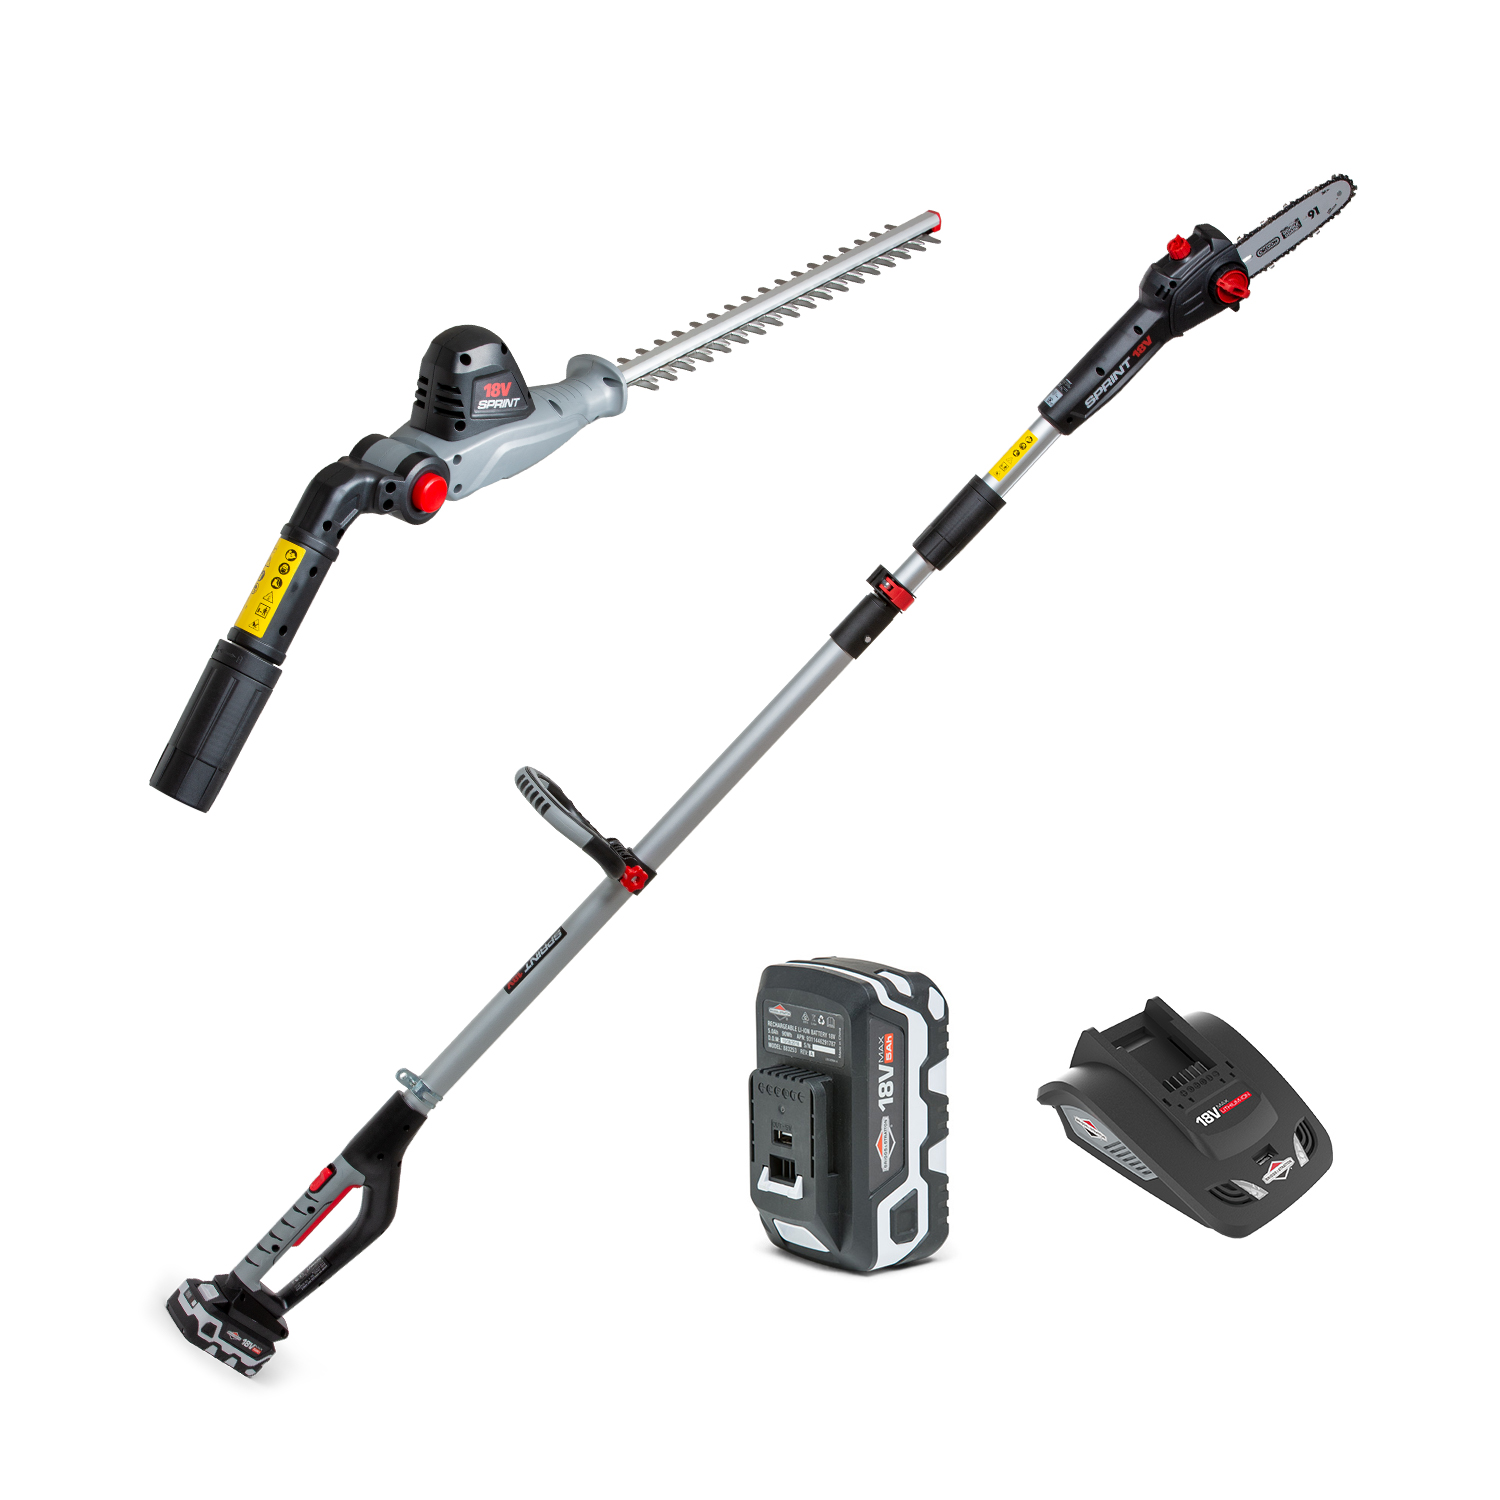 18V LiIon Cordless Pole Saw  Hedge Trimmer 2in1 Kit